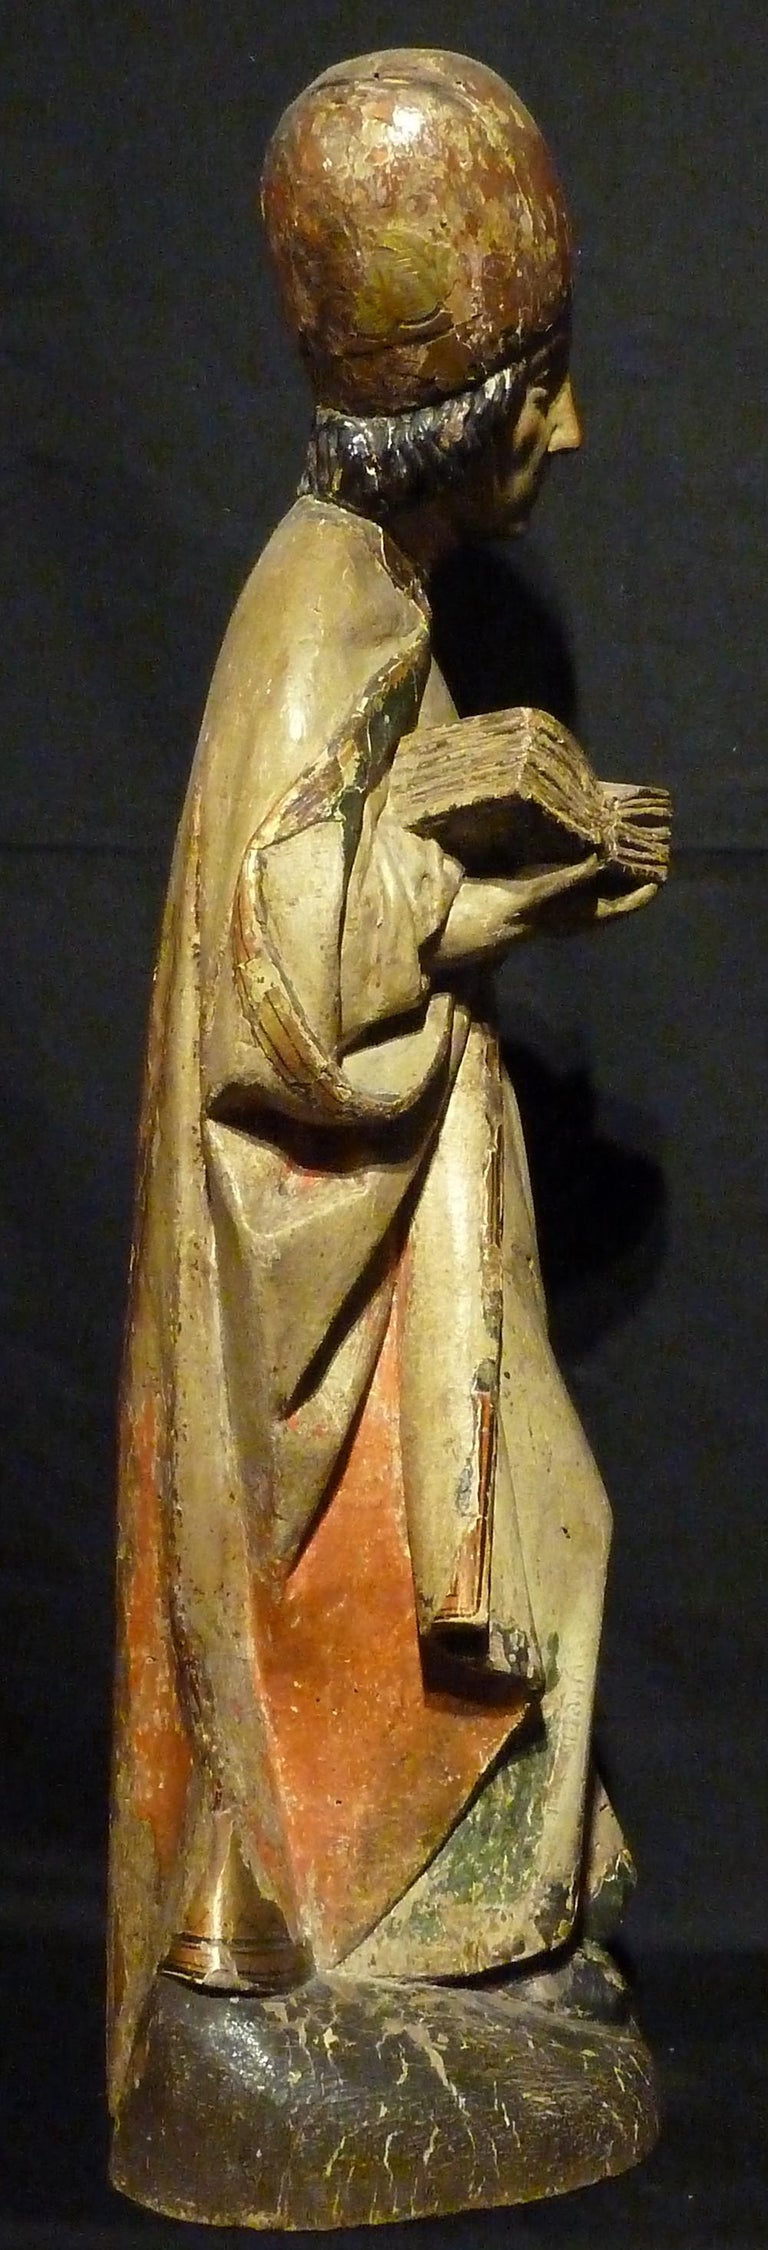 Polychrome-decorated carved wood sculpture, wearing the vestments of a bishop, with book in his left hand. South Tyrol 15th century, measures: 57 cm H.